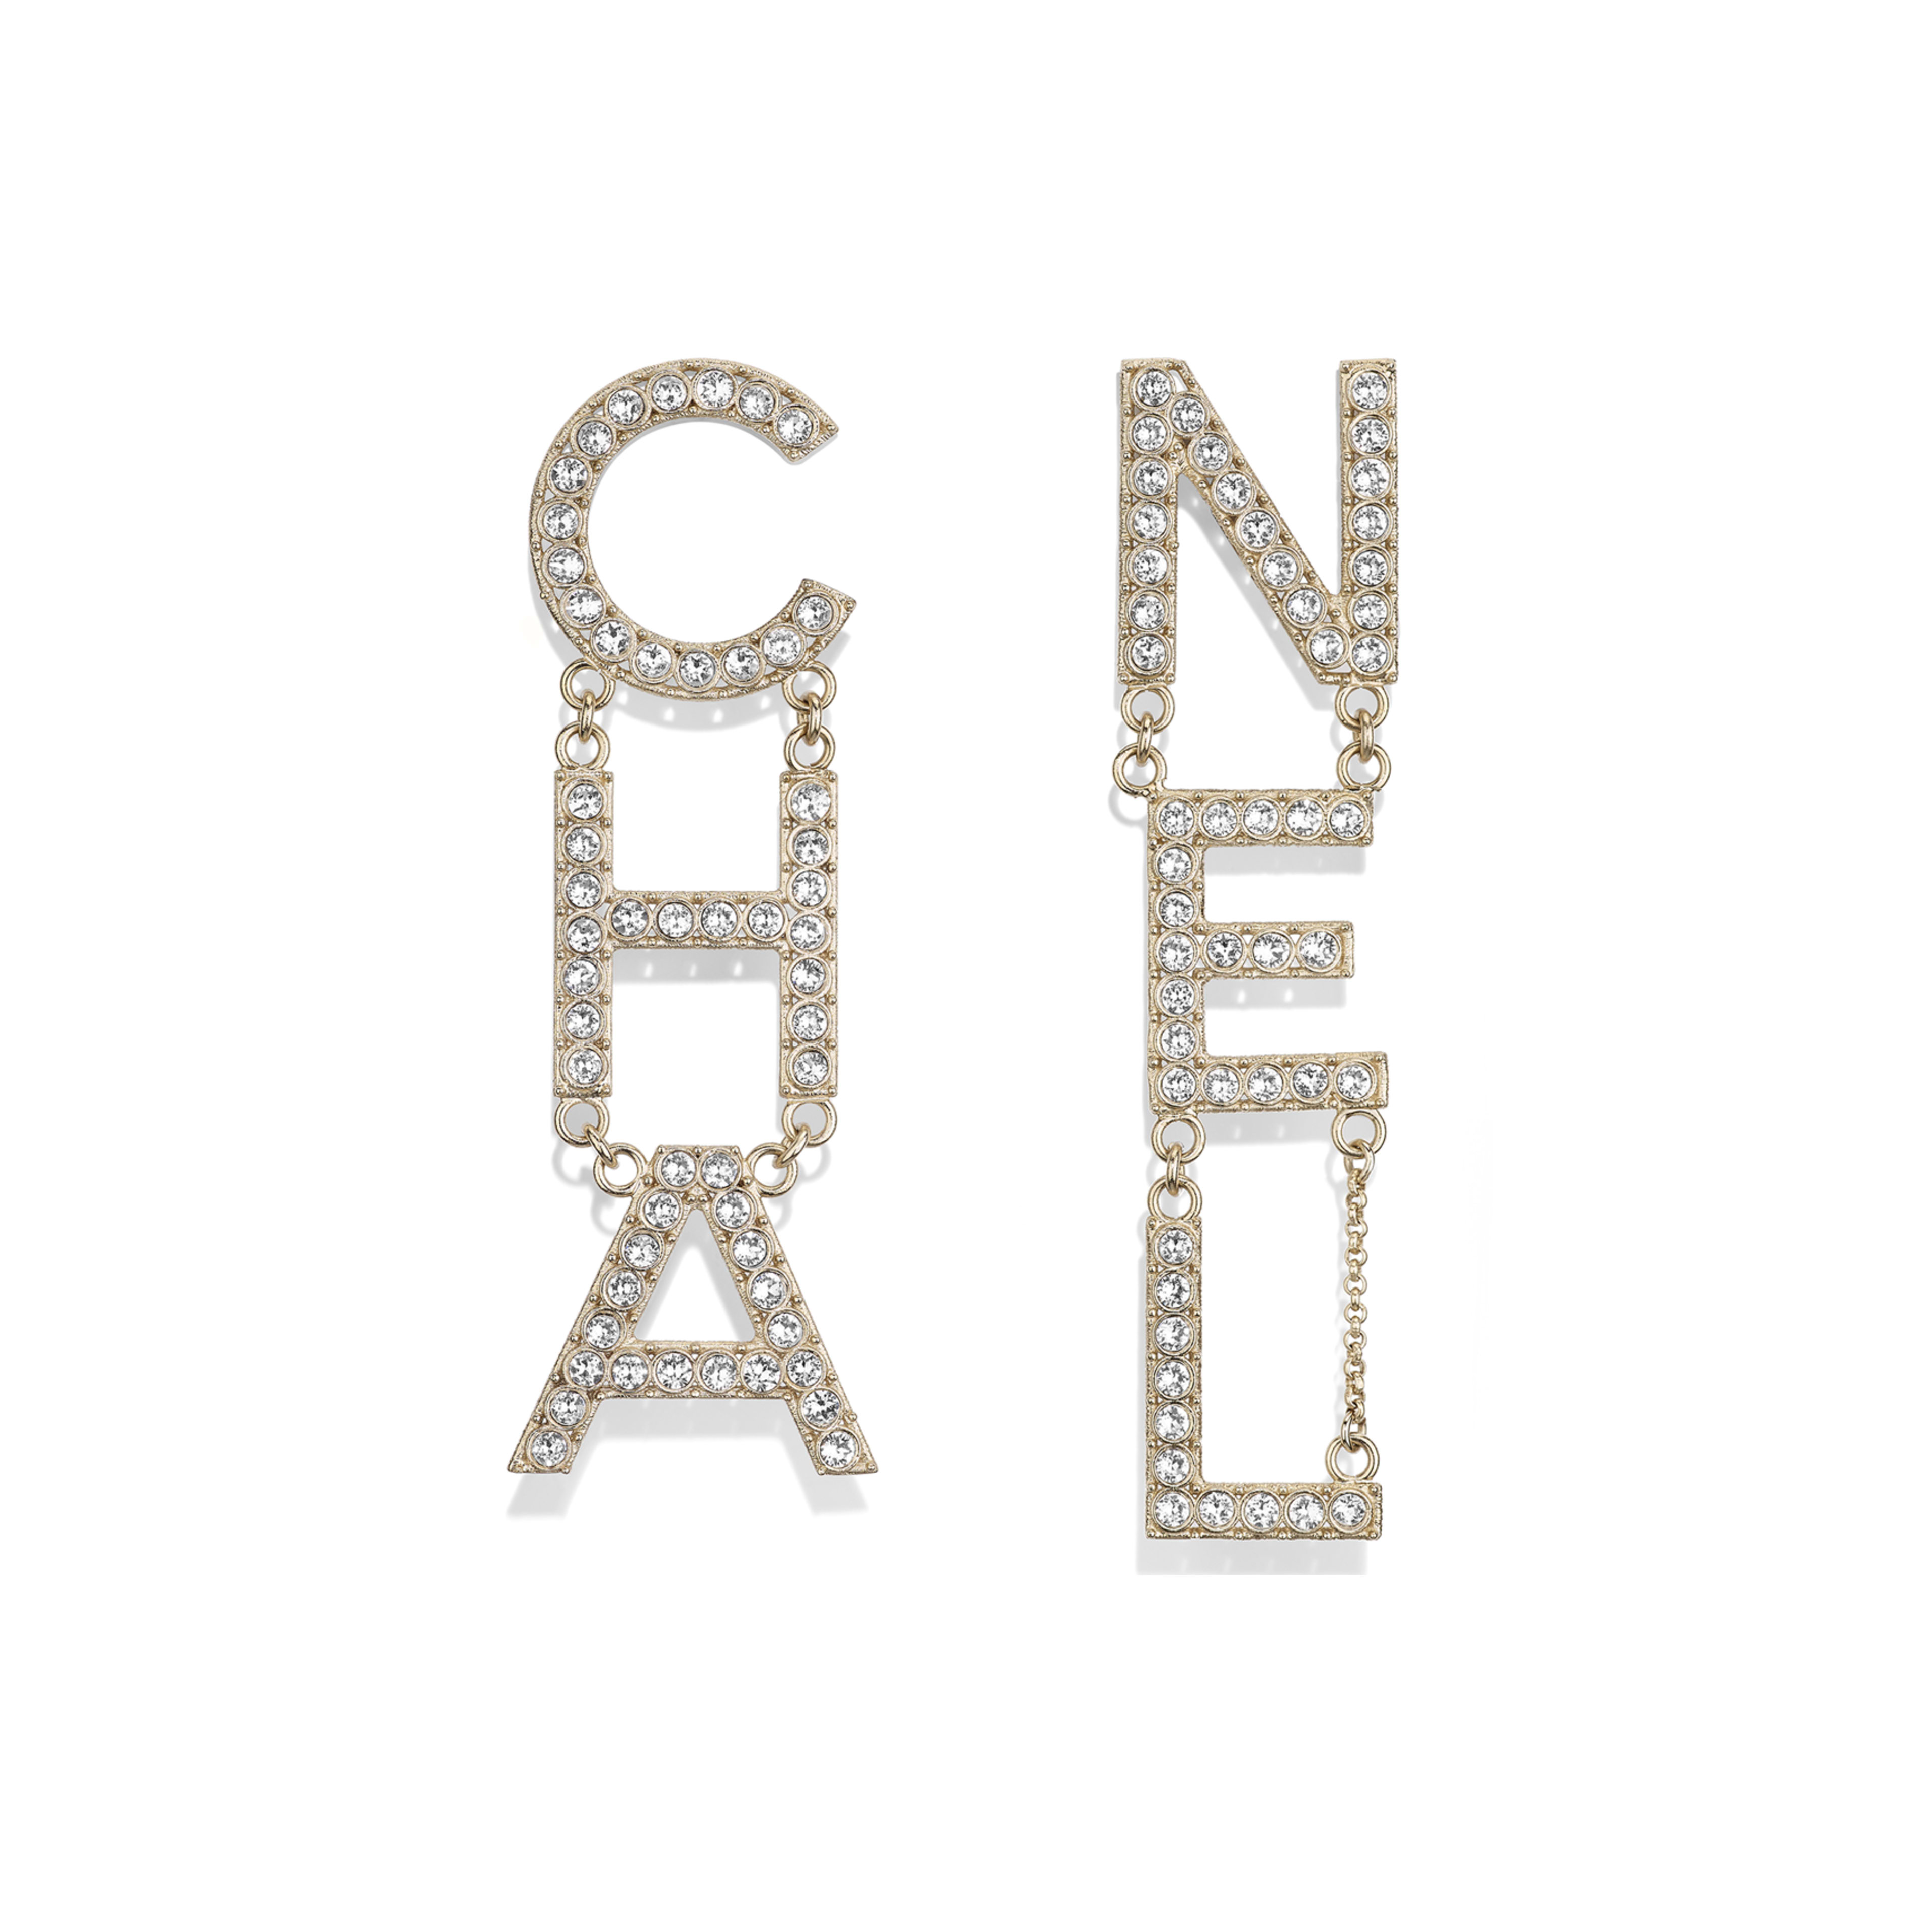 Metal & Strass Gold & Crystal Earrings | CHANEL